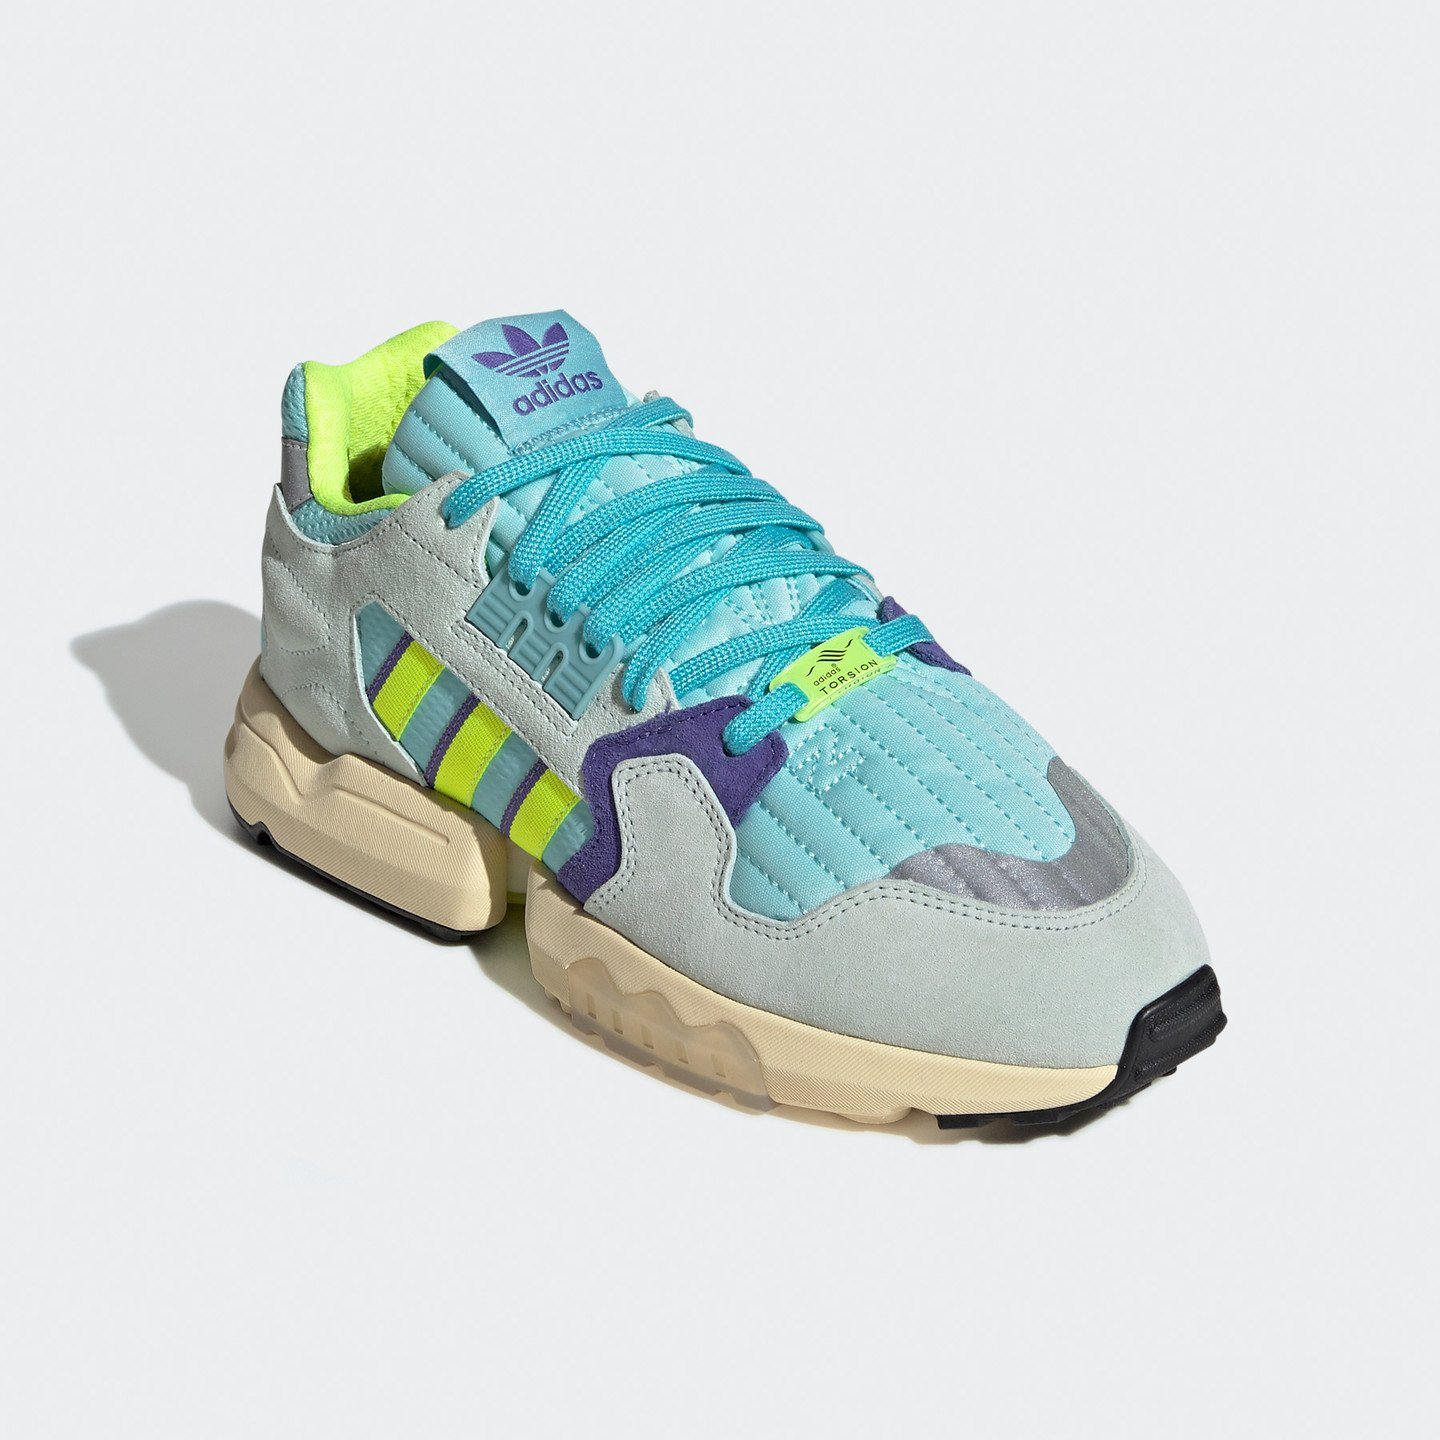 Adidas ZX Torsion 'Aqua' Claqua / Syello / Purple EF4343